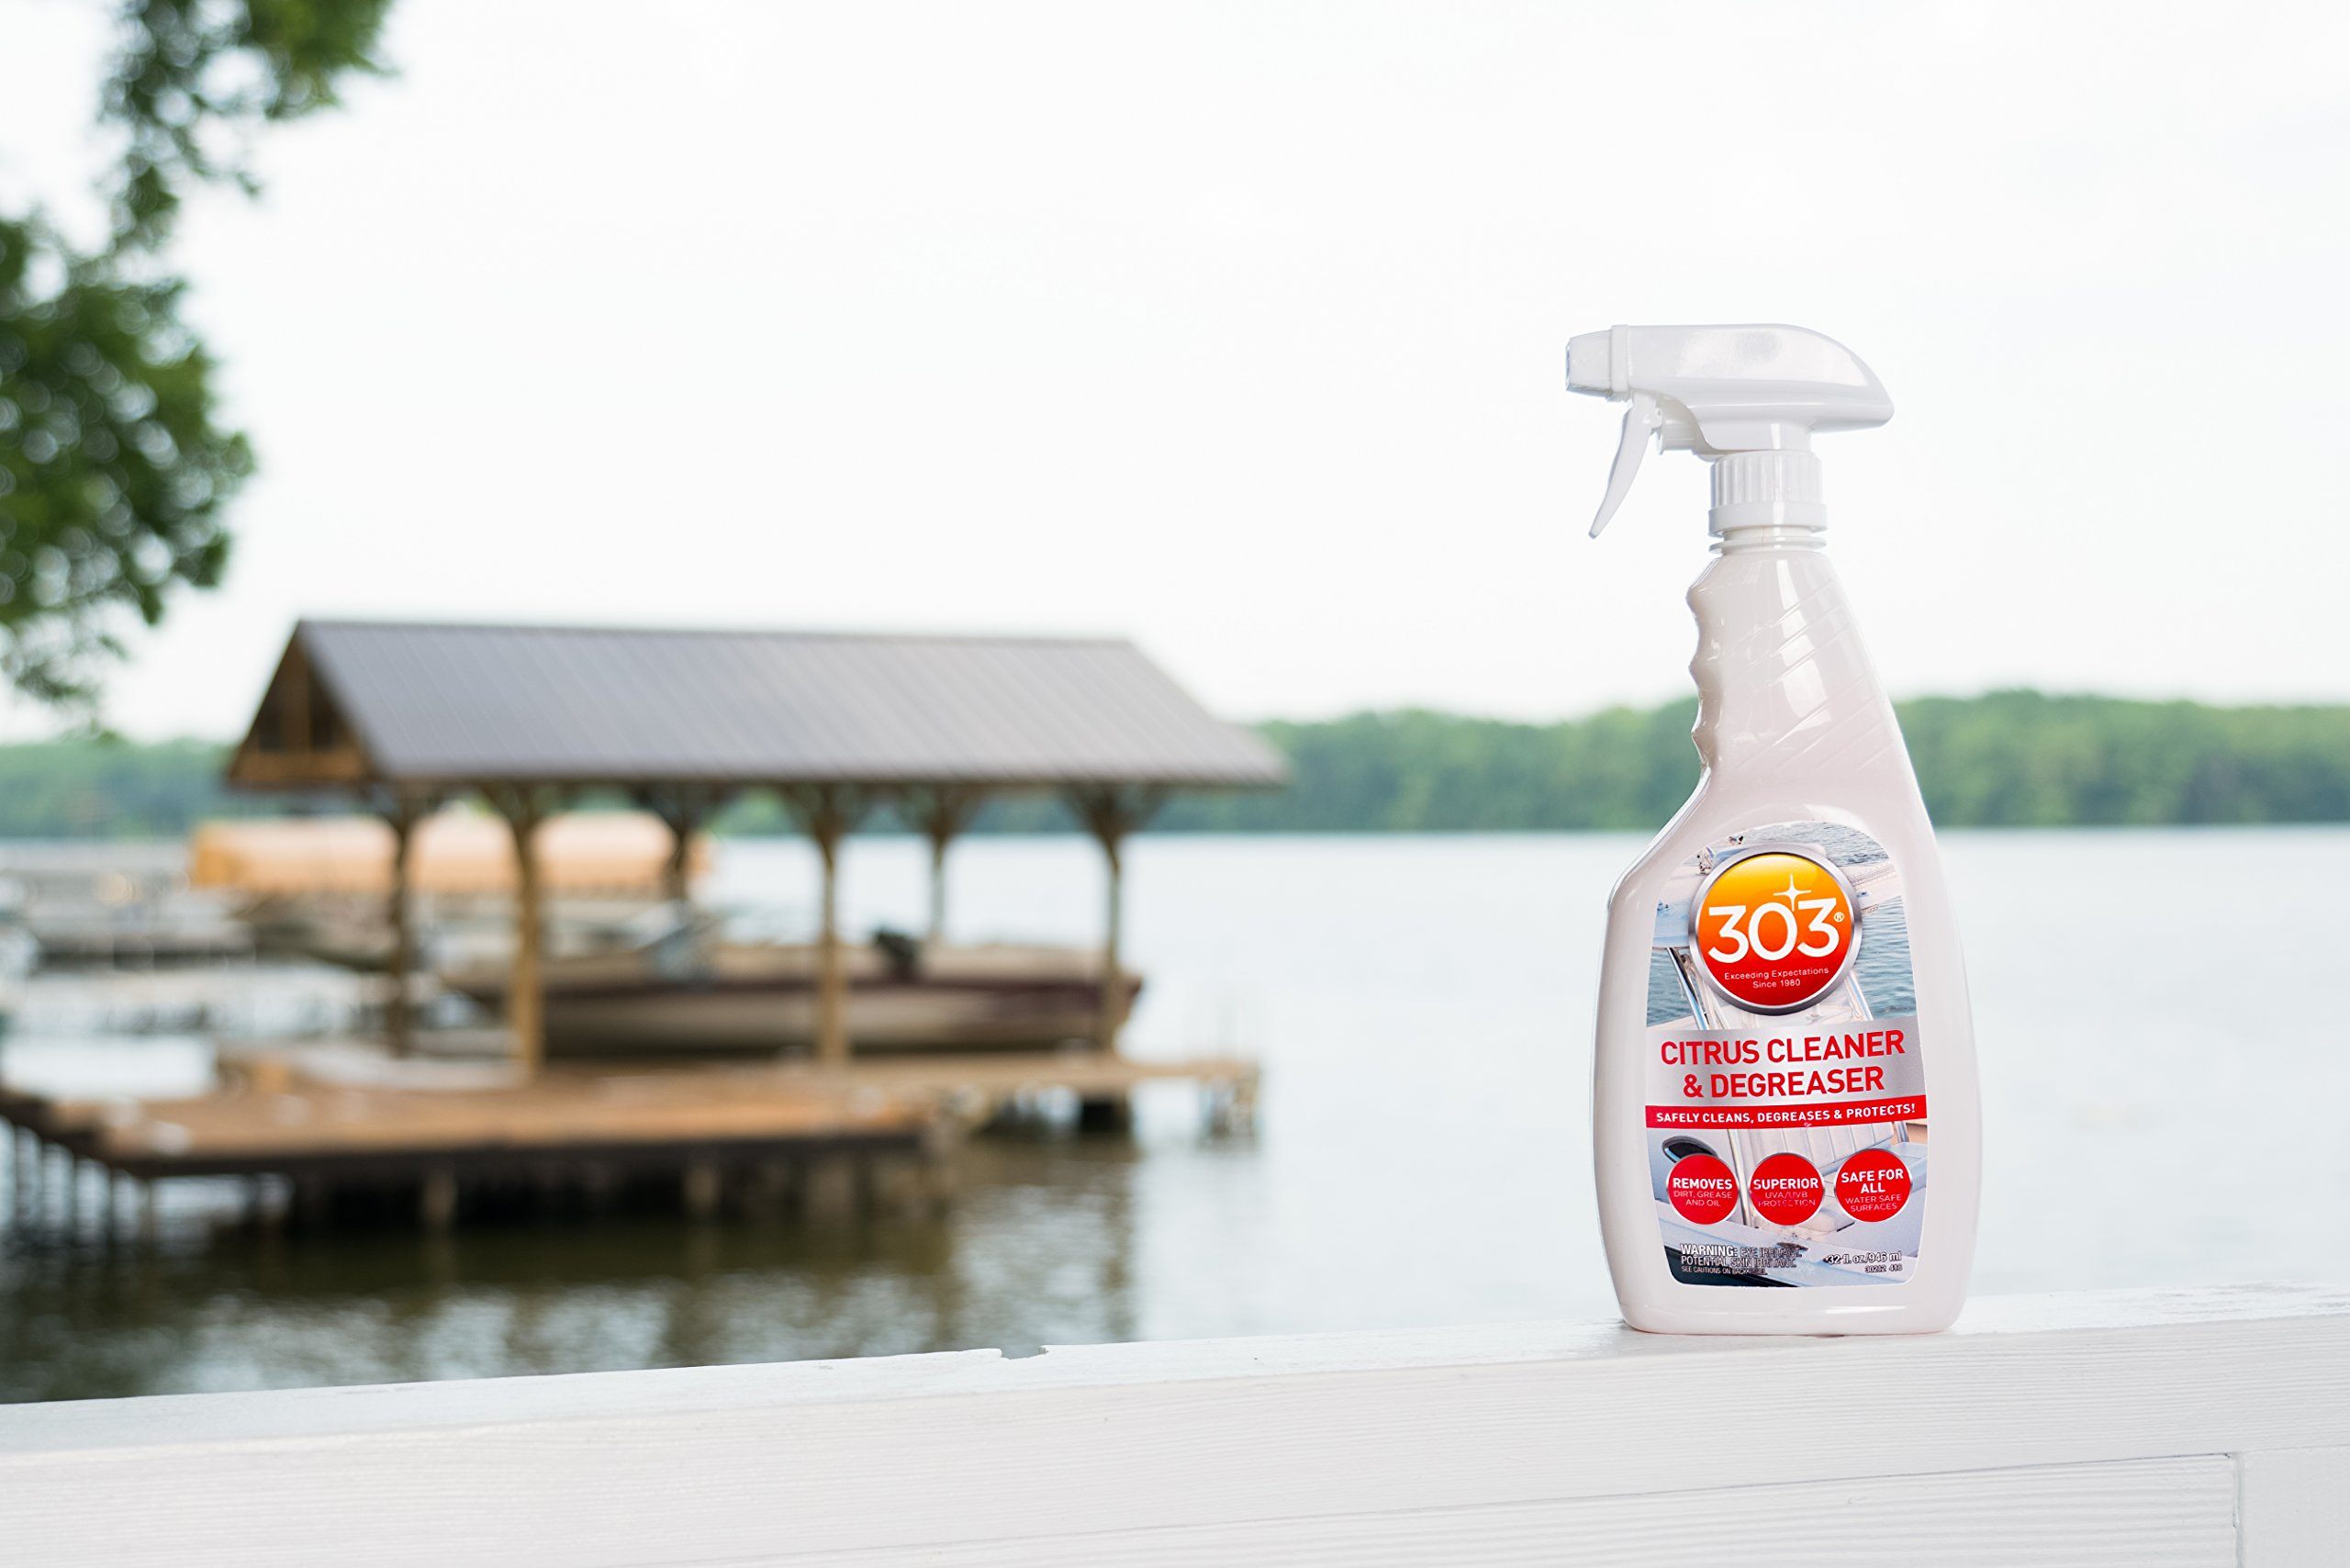 303 30212-6PK Citrus Cleaner and Degreaser - 32 fl. oz. (Pack of 6) by 303 Products (Image #6)